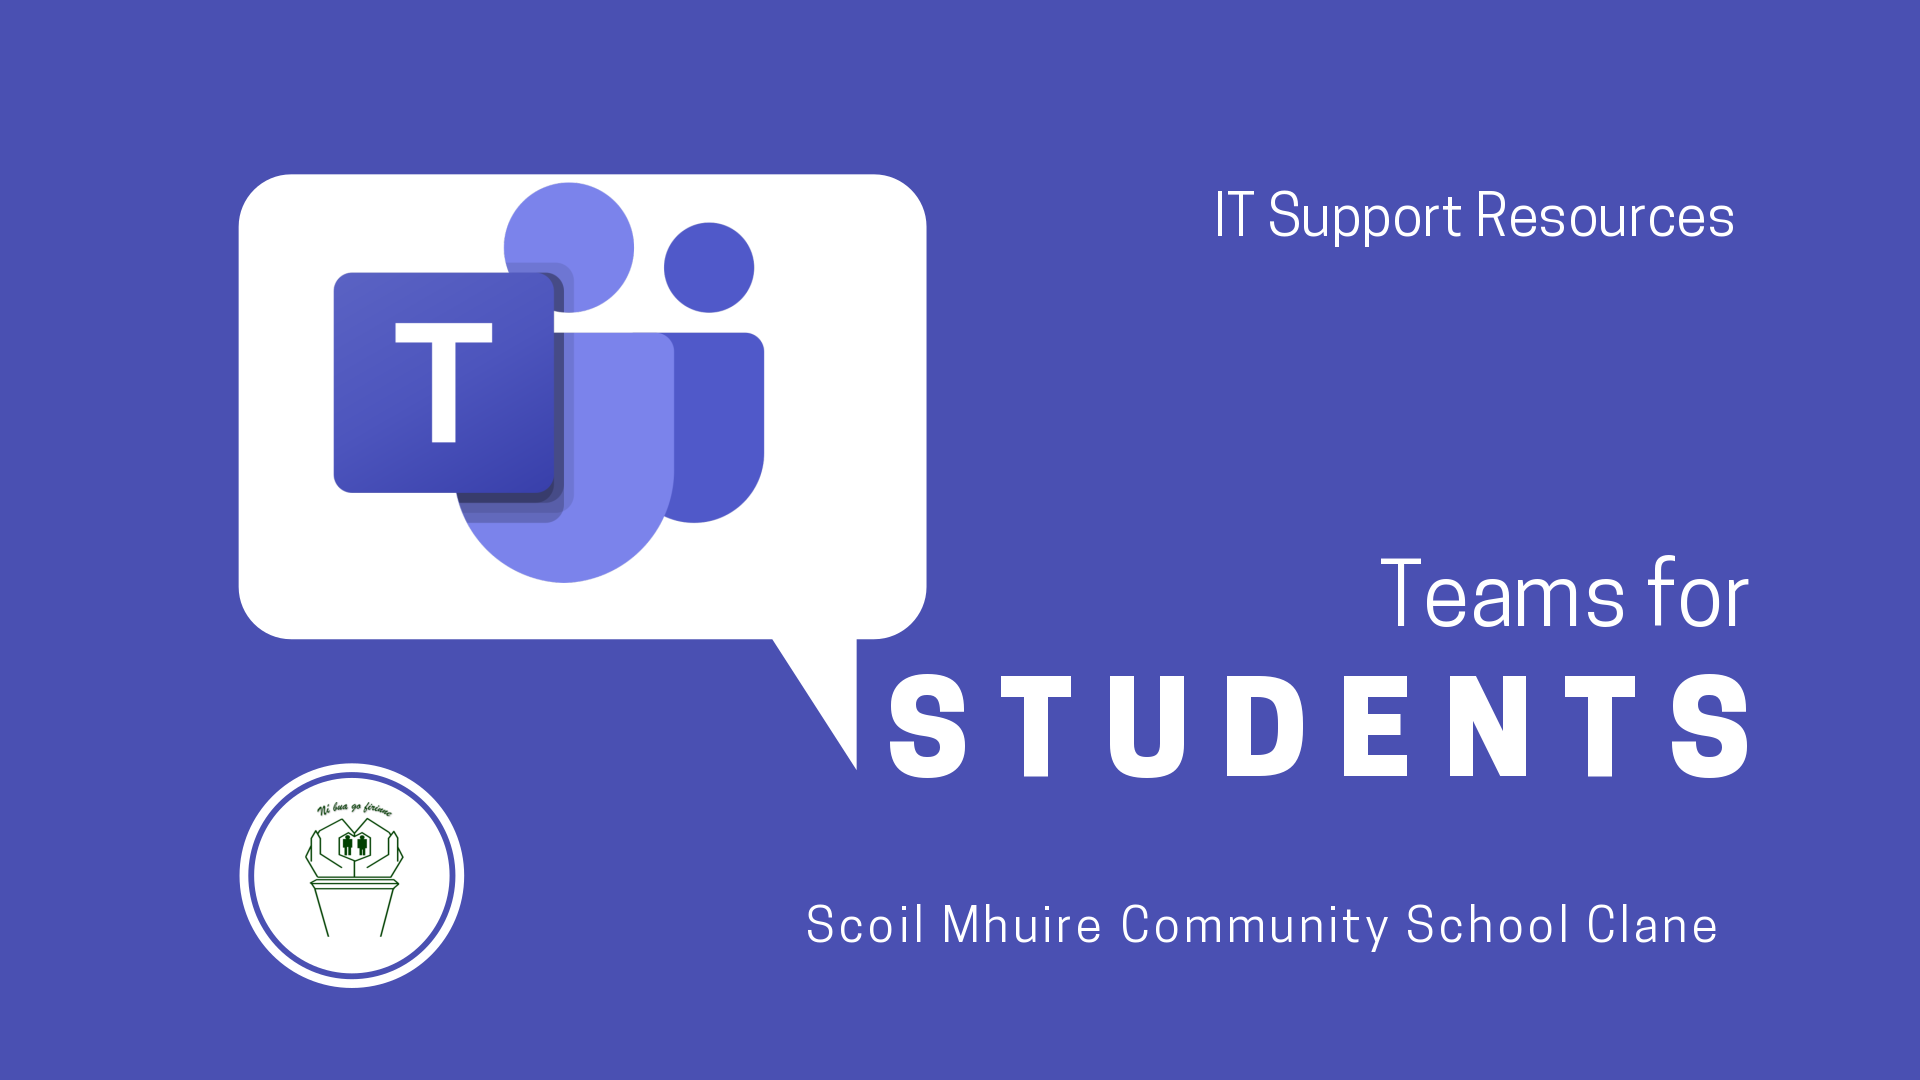 Teams IT Support Students